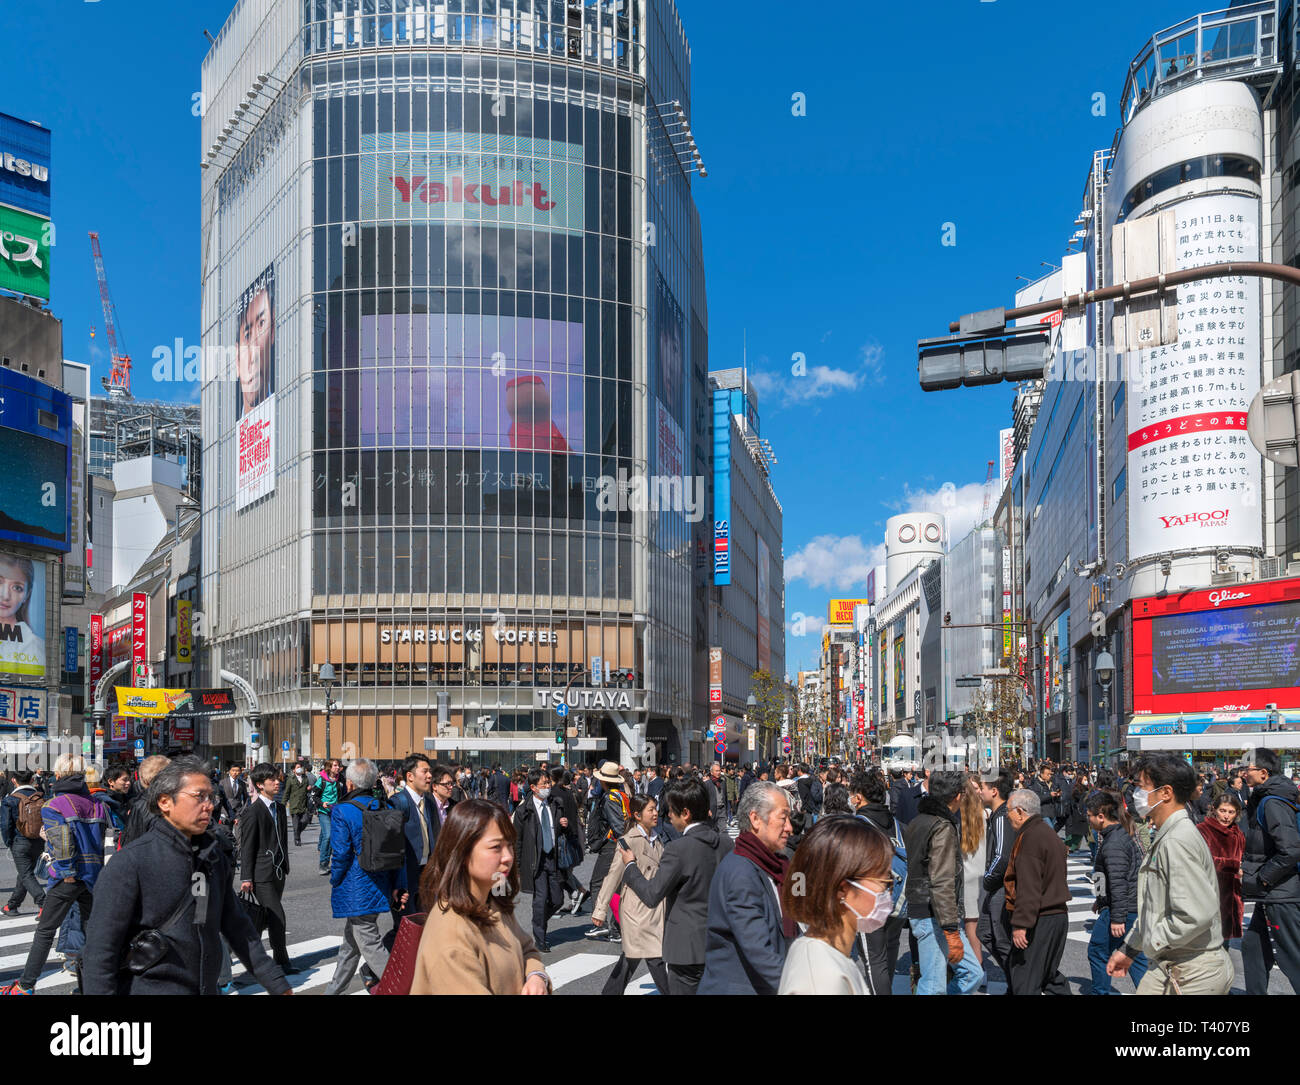 Shibuya Crossing, a scramble or diagonal pedestrian intersection in Hachiko Square, one of the busiest in the world, Shibuya, Tokyo, Japan - Stock Image